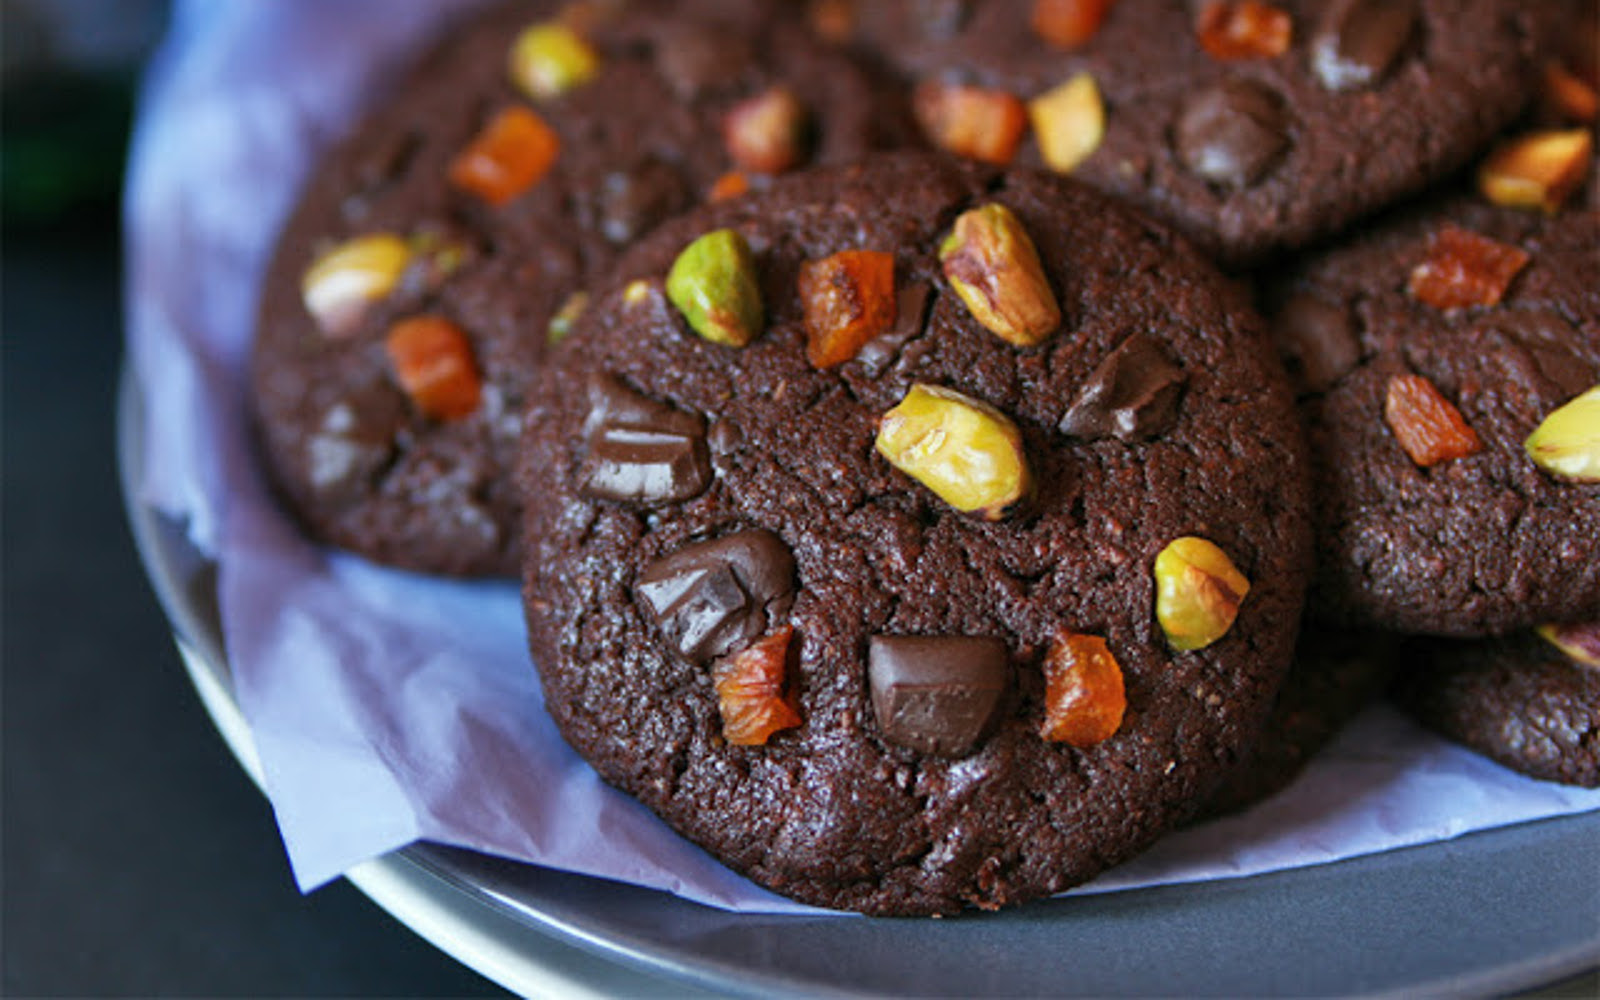 Chocolate Cookies With Apricot, Pistachios, and Chocolate Chips